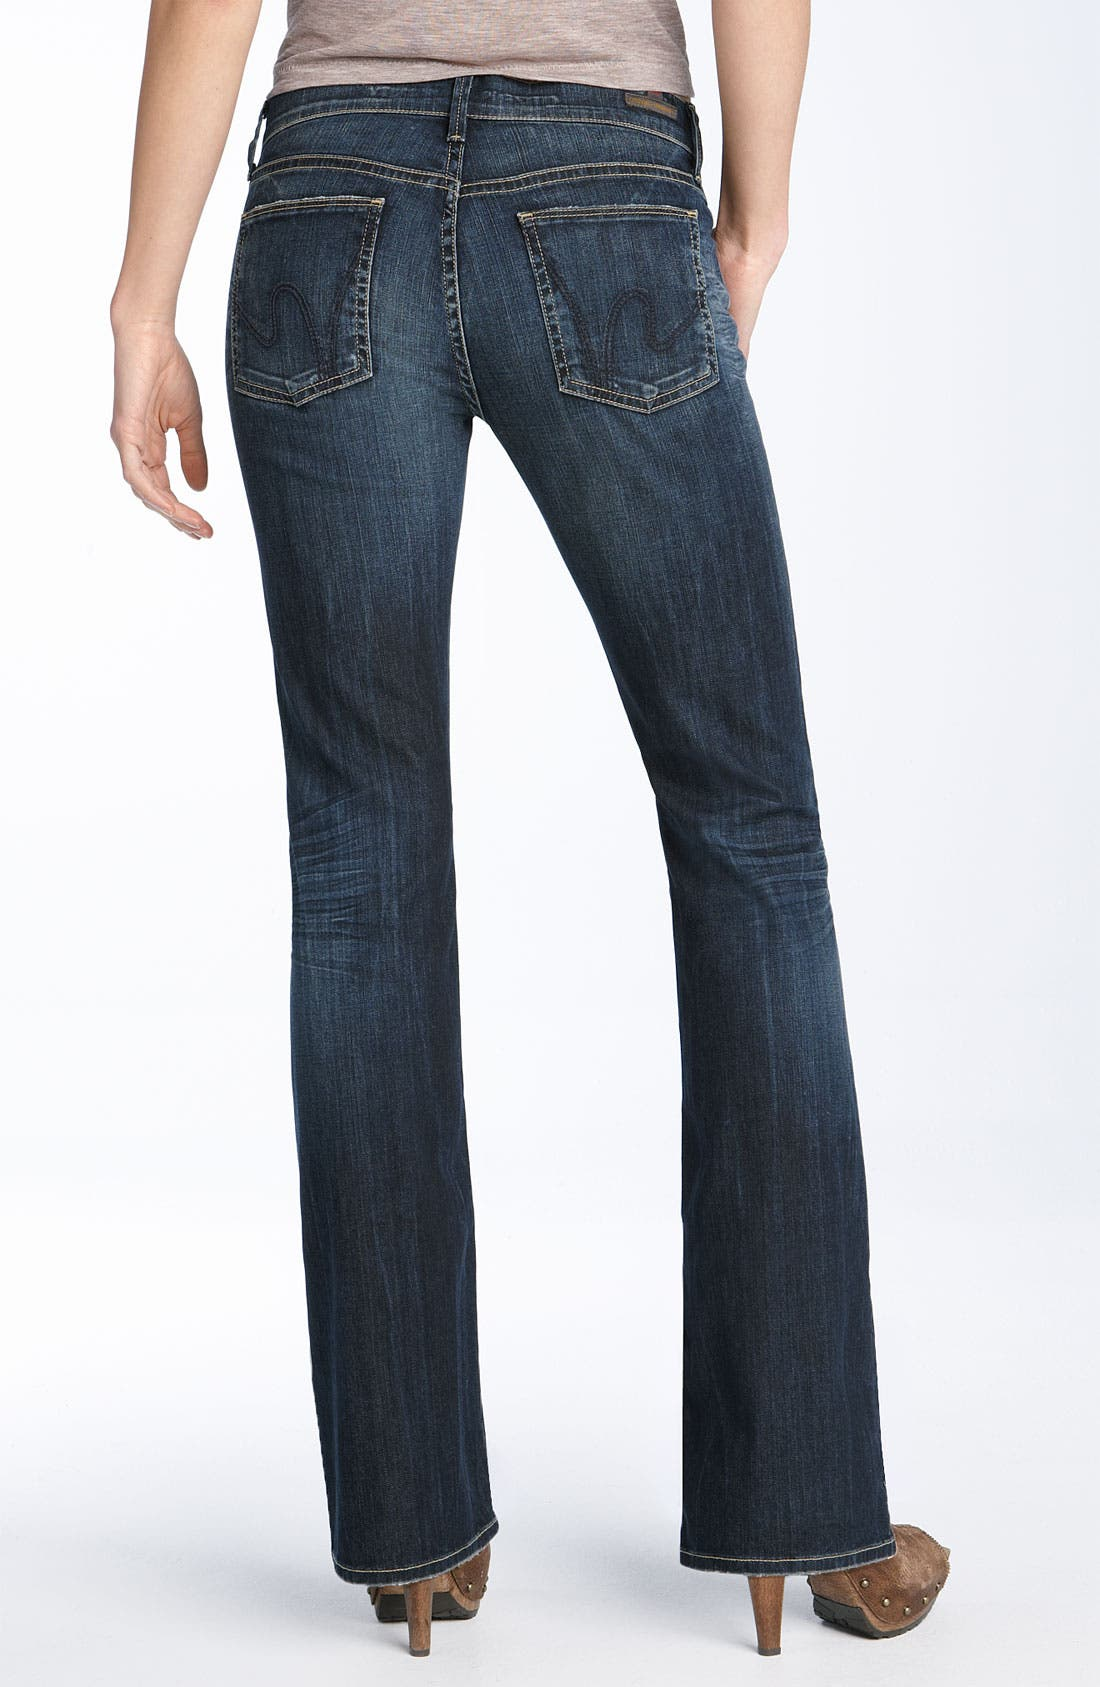 Alternate Image 1 Selected - Citizens of Humanity 'Dita' Bootcut Stretch Jeans (Saint Wash) (Petite)